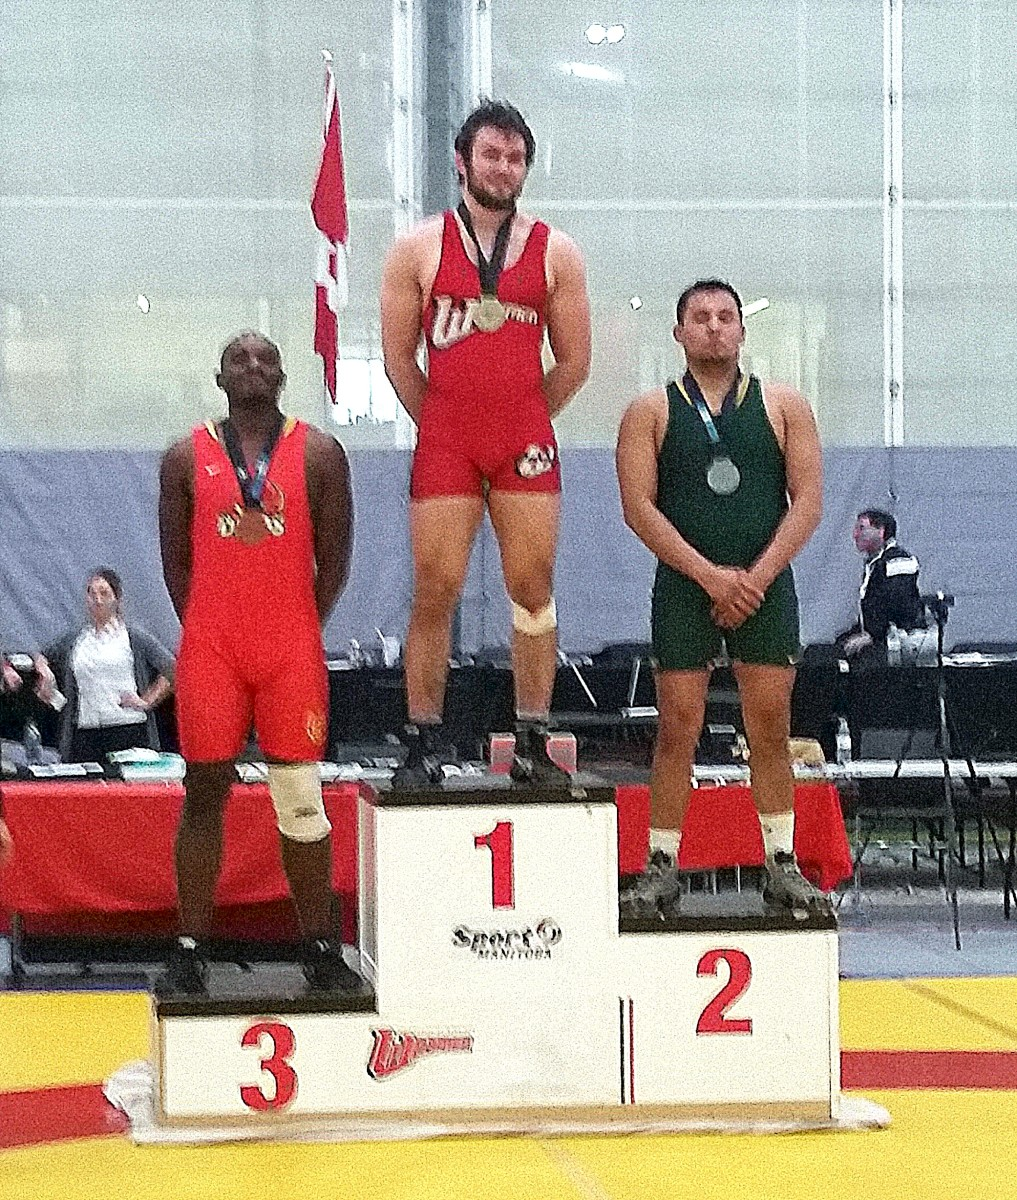 Waylon DeCoteau took 2nd overall nationally in Canada.